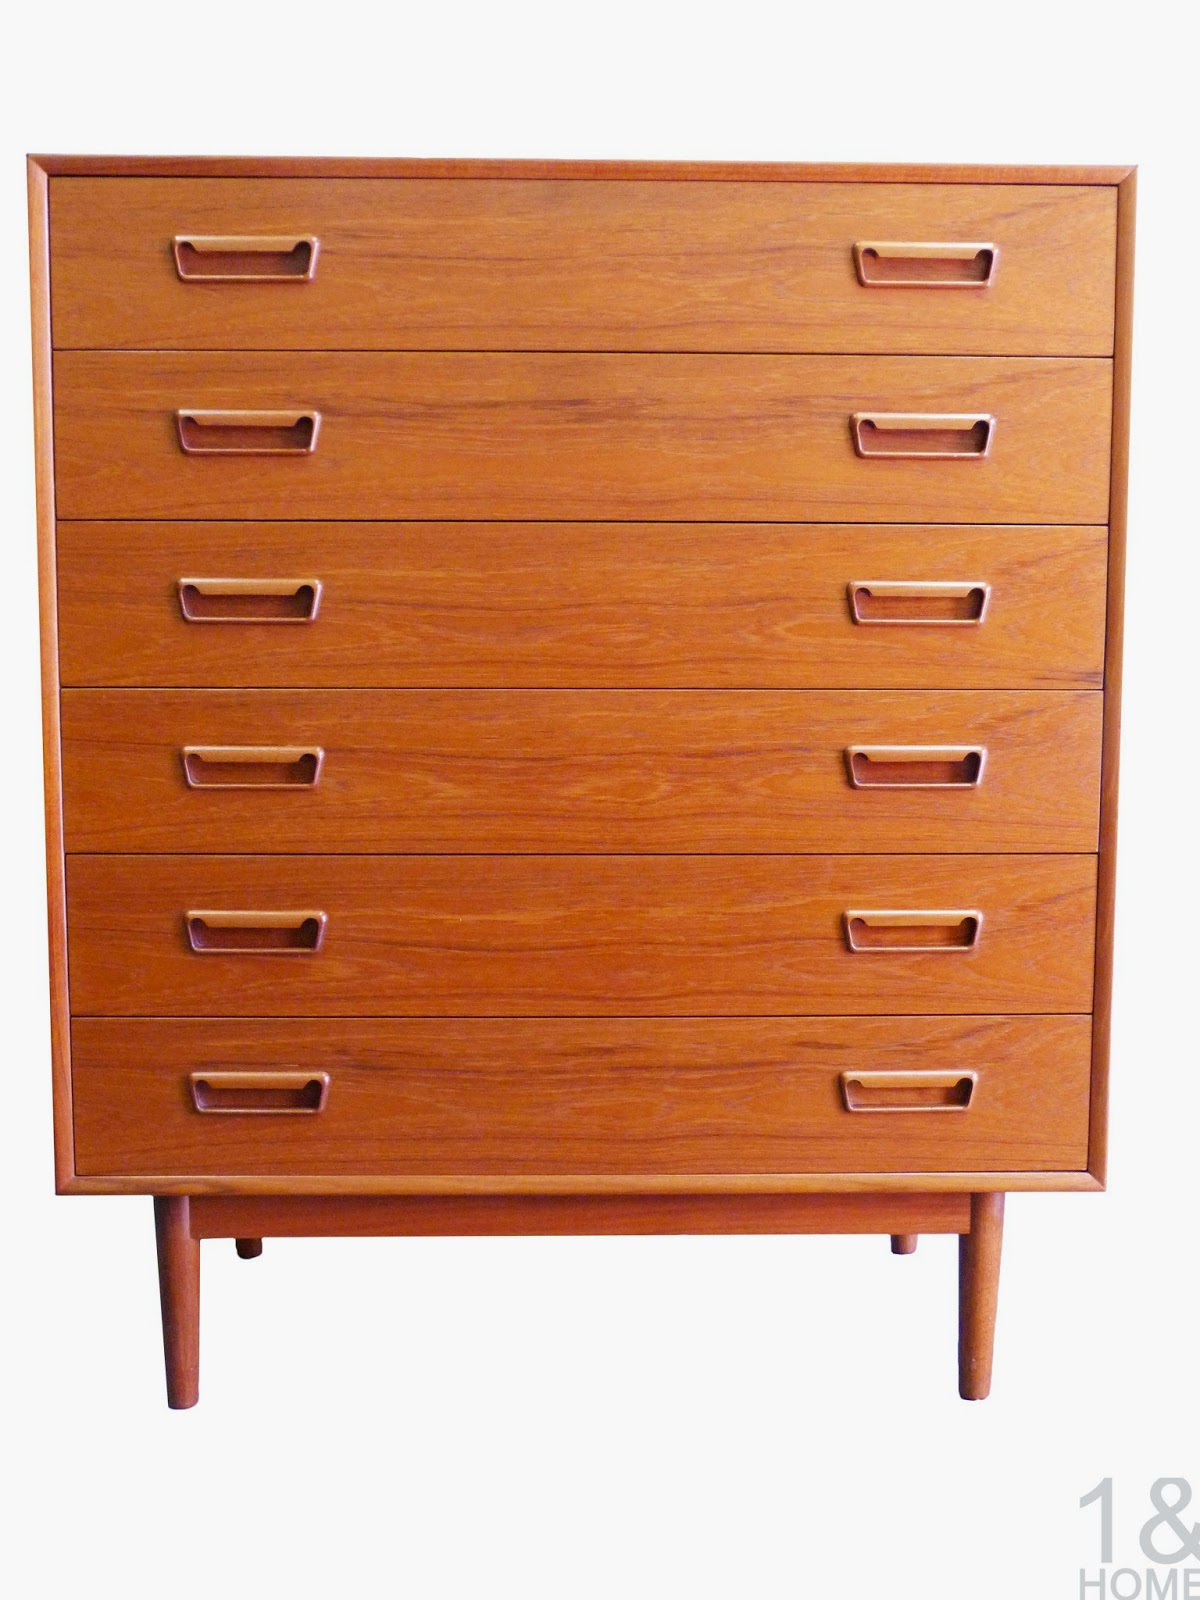 Modern mid century danish vintage furniture shop used for Contemporary dressers and nightstands